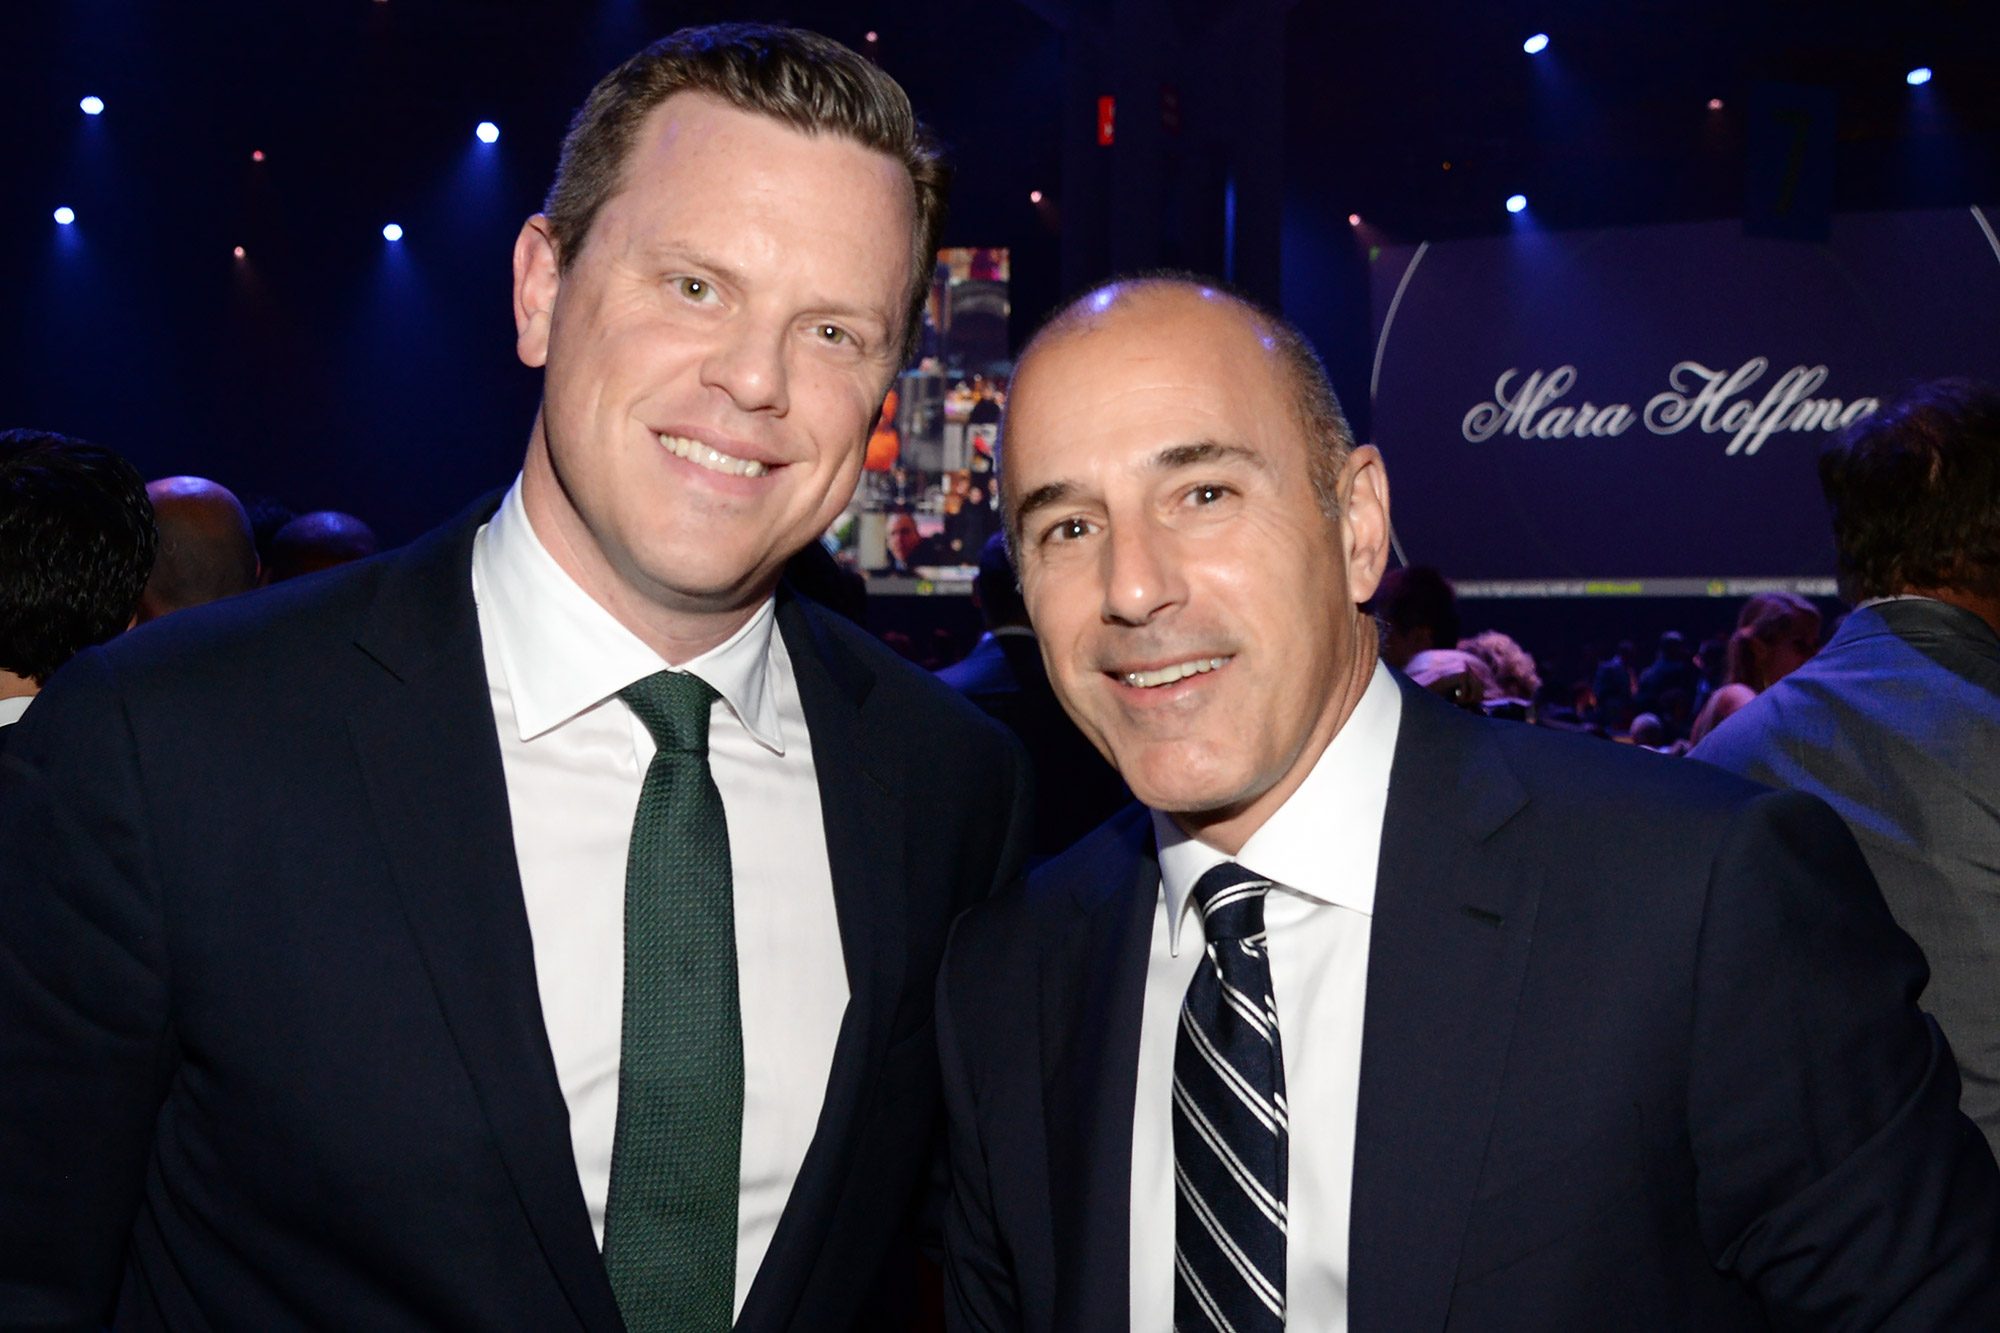 The Robin Hood Foundation's 2015 Benefit